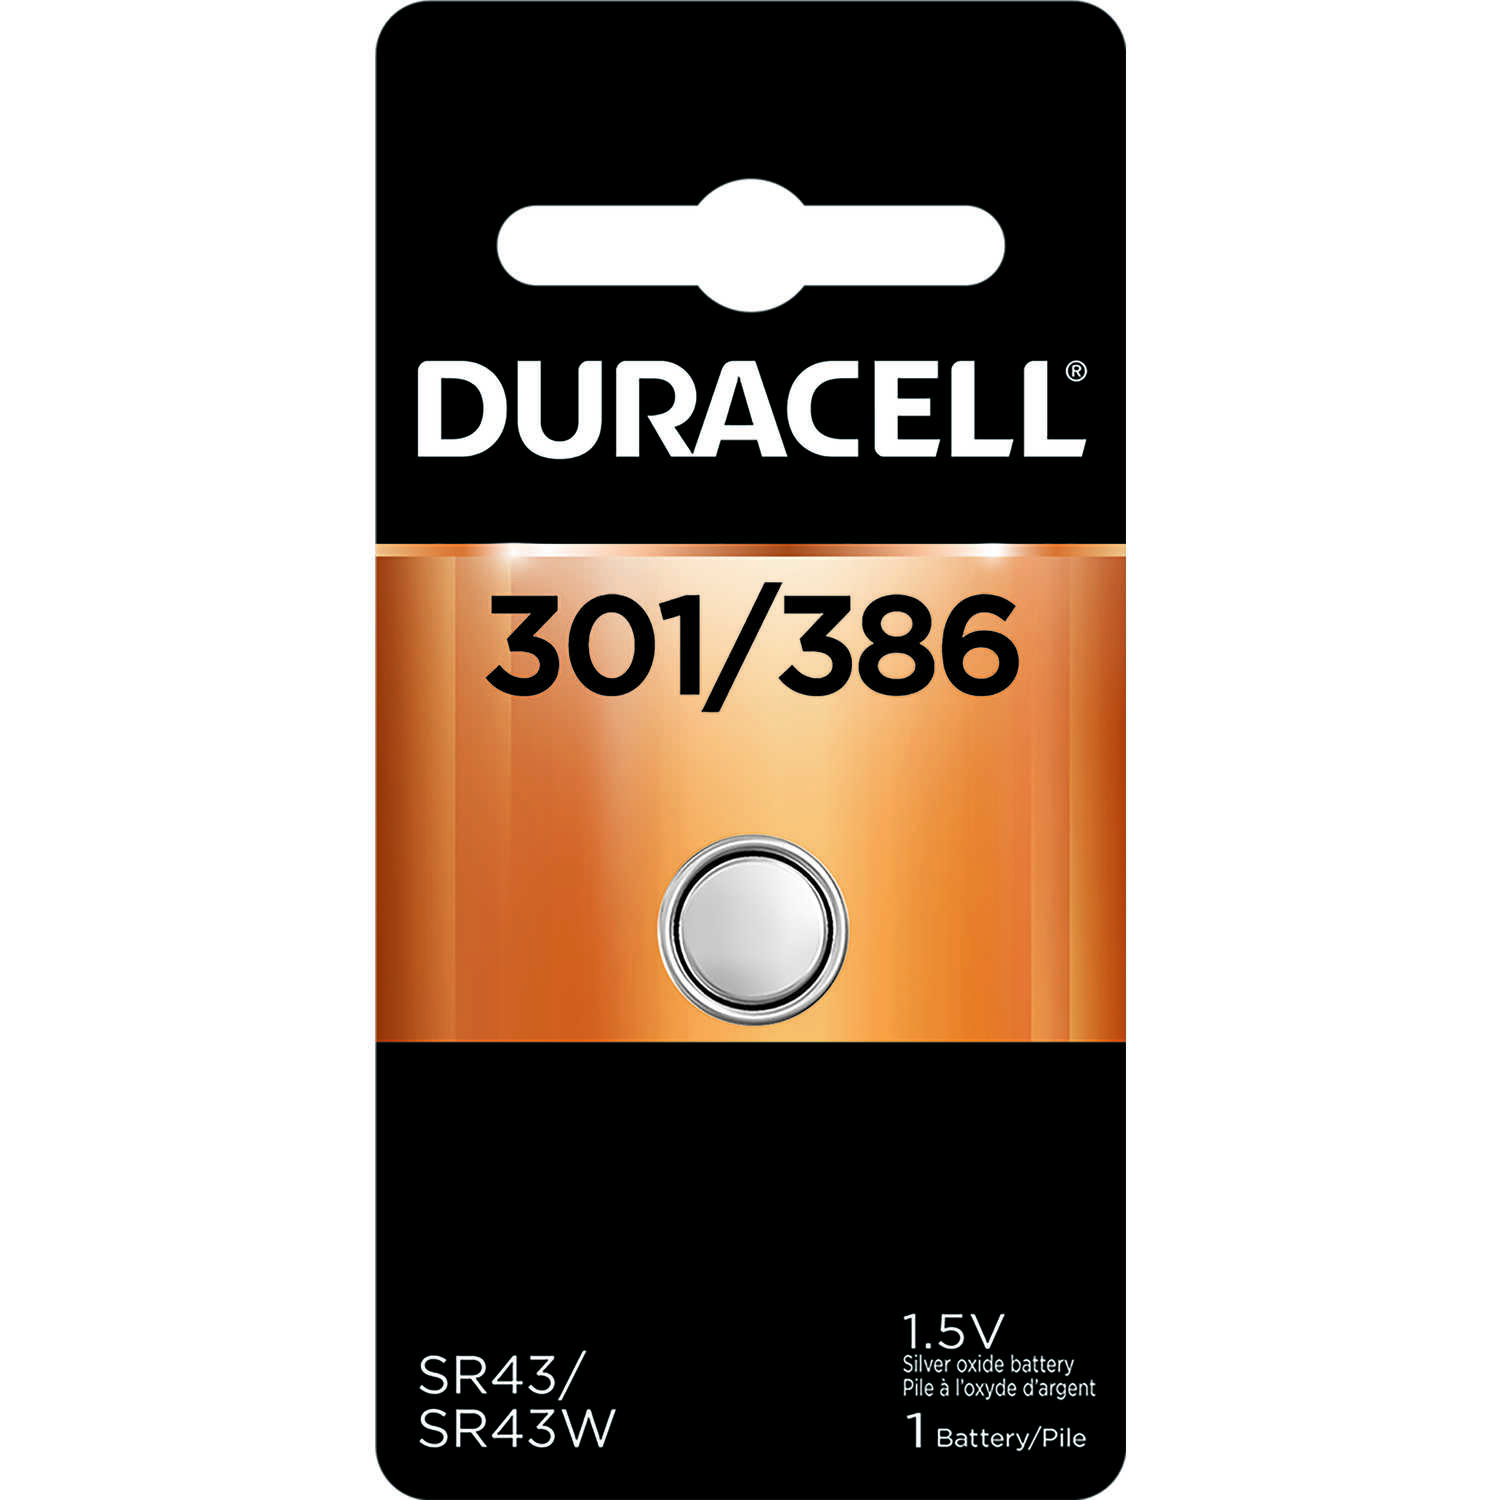 Duracell  Silver Oxide  1.5 volt 1 pk Electronic/Watch Battery  301/386